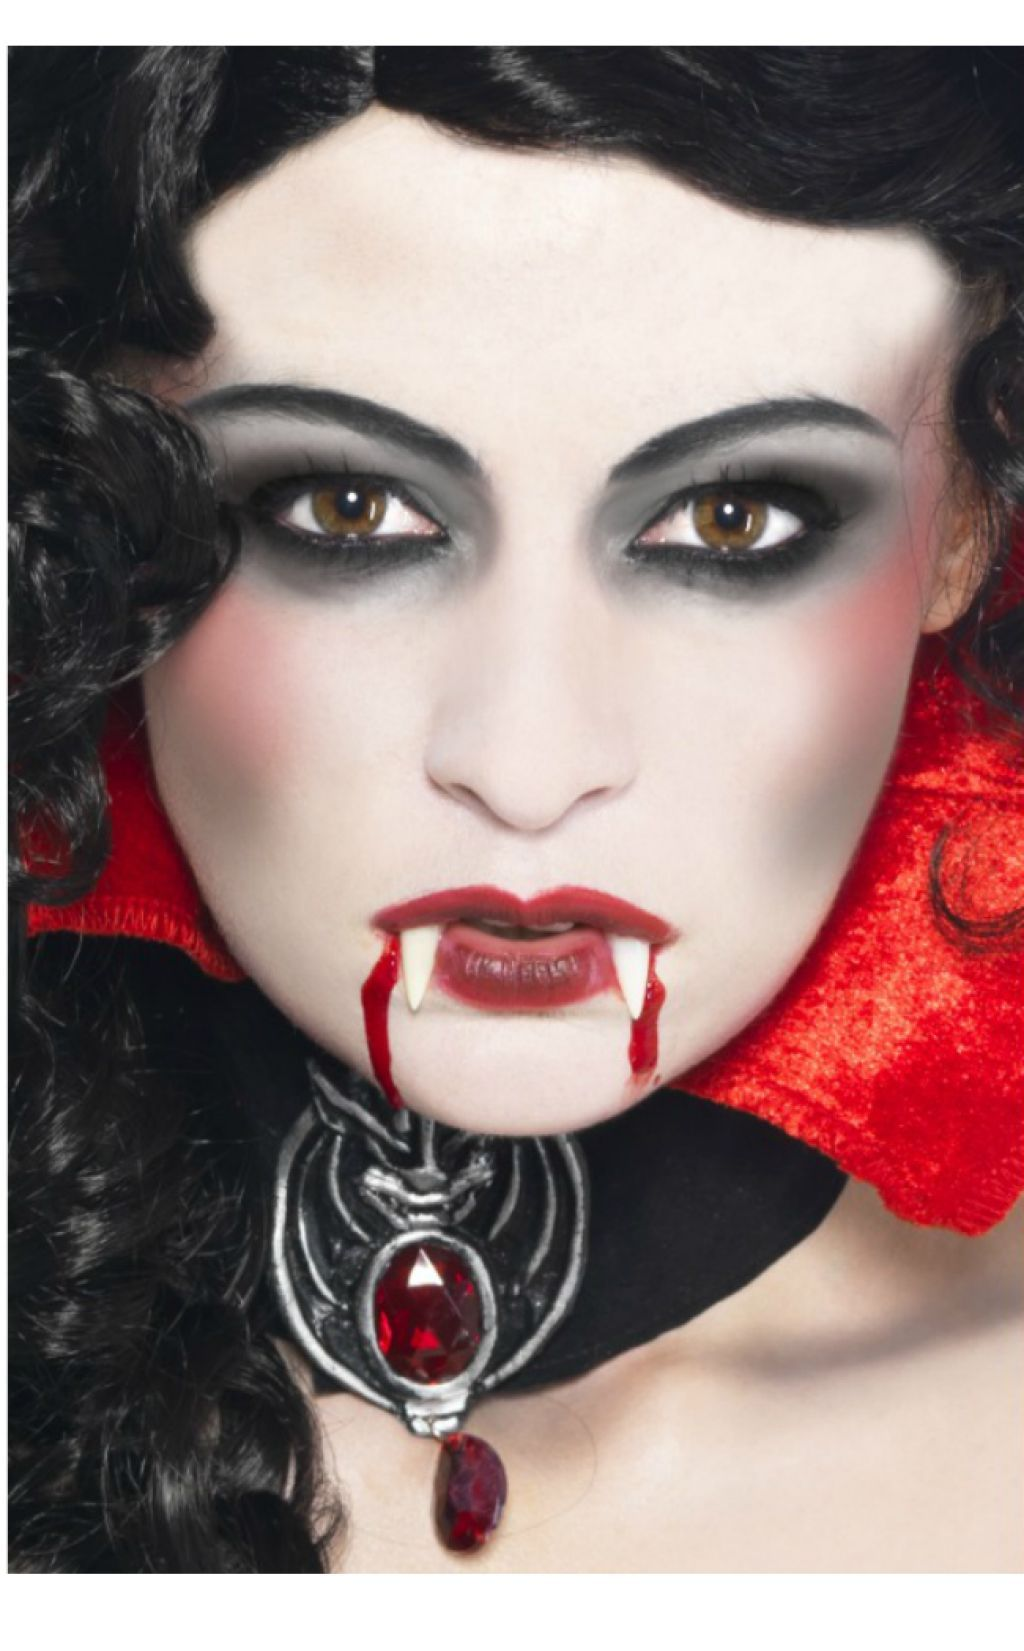 Vampire Makeup Complete The Perfect Vampire Costume With A Vampire Makeup Set Halloween Make Skelet Make Up Make Up Diy